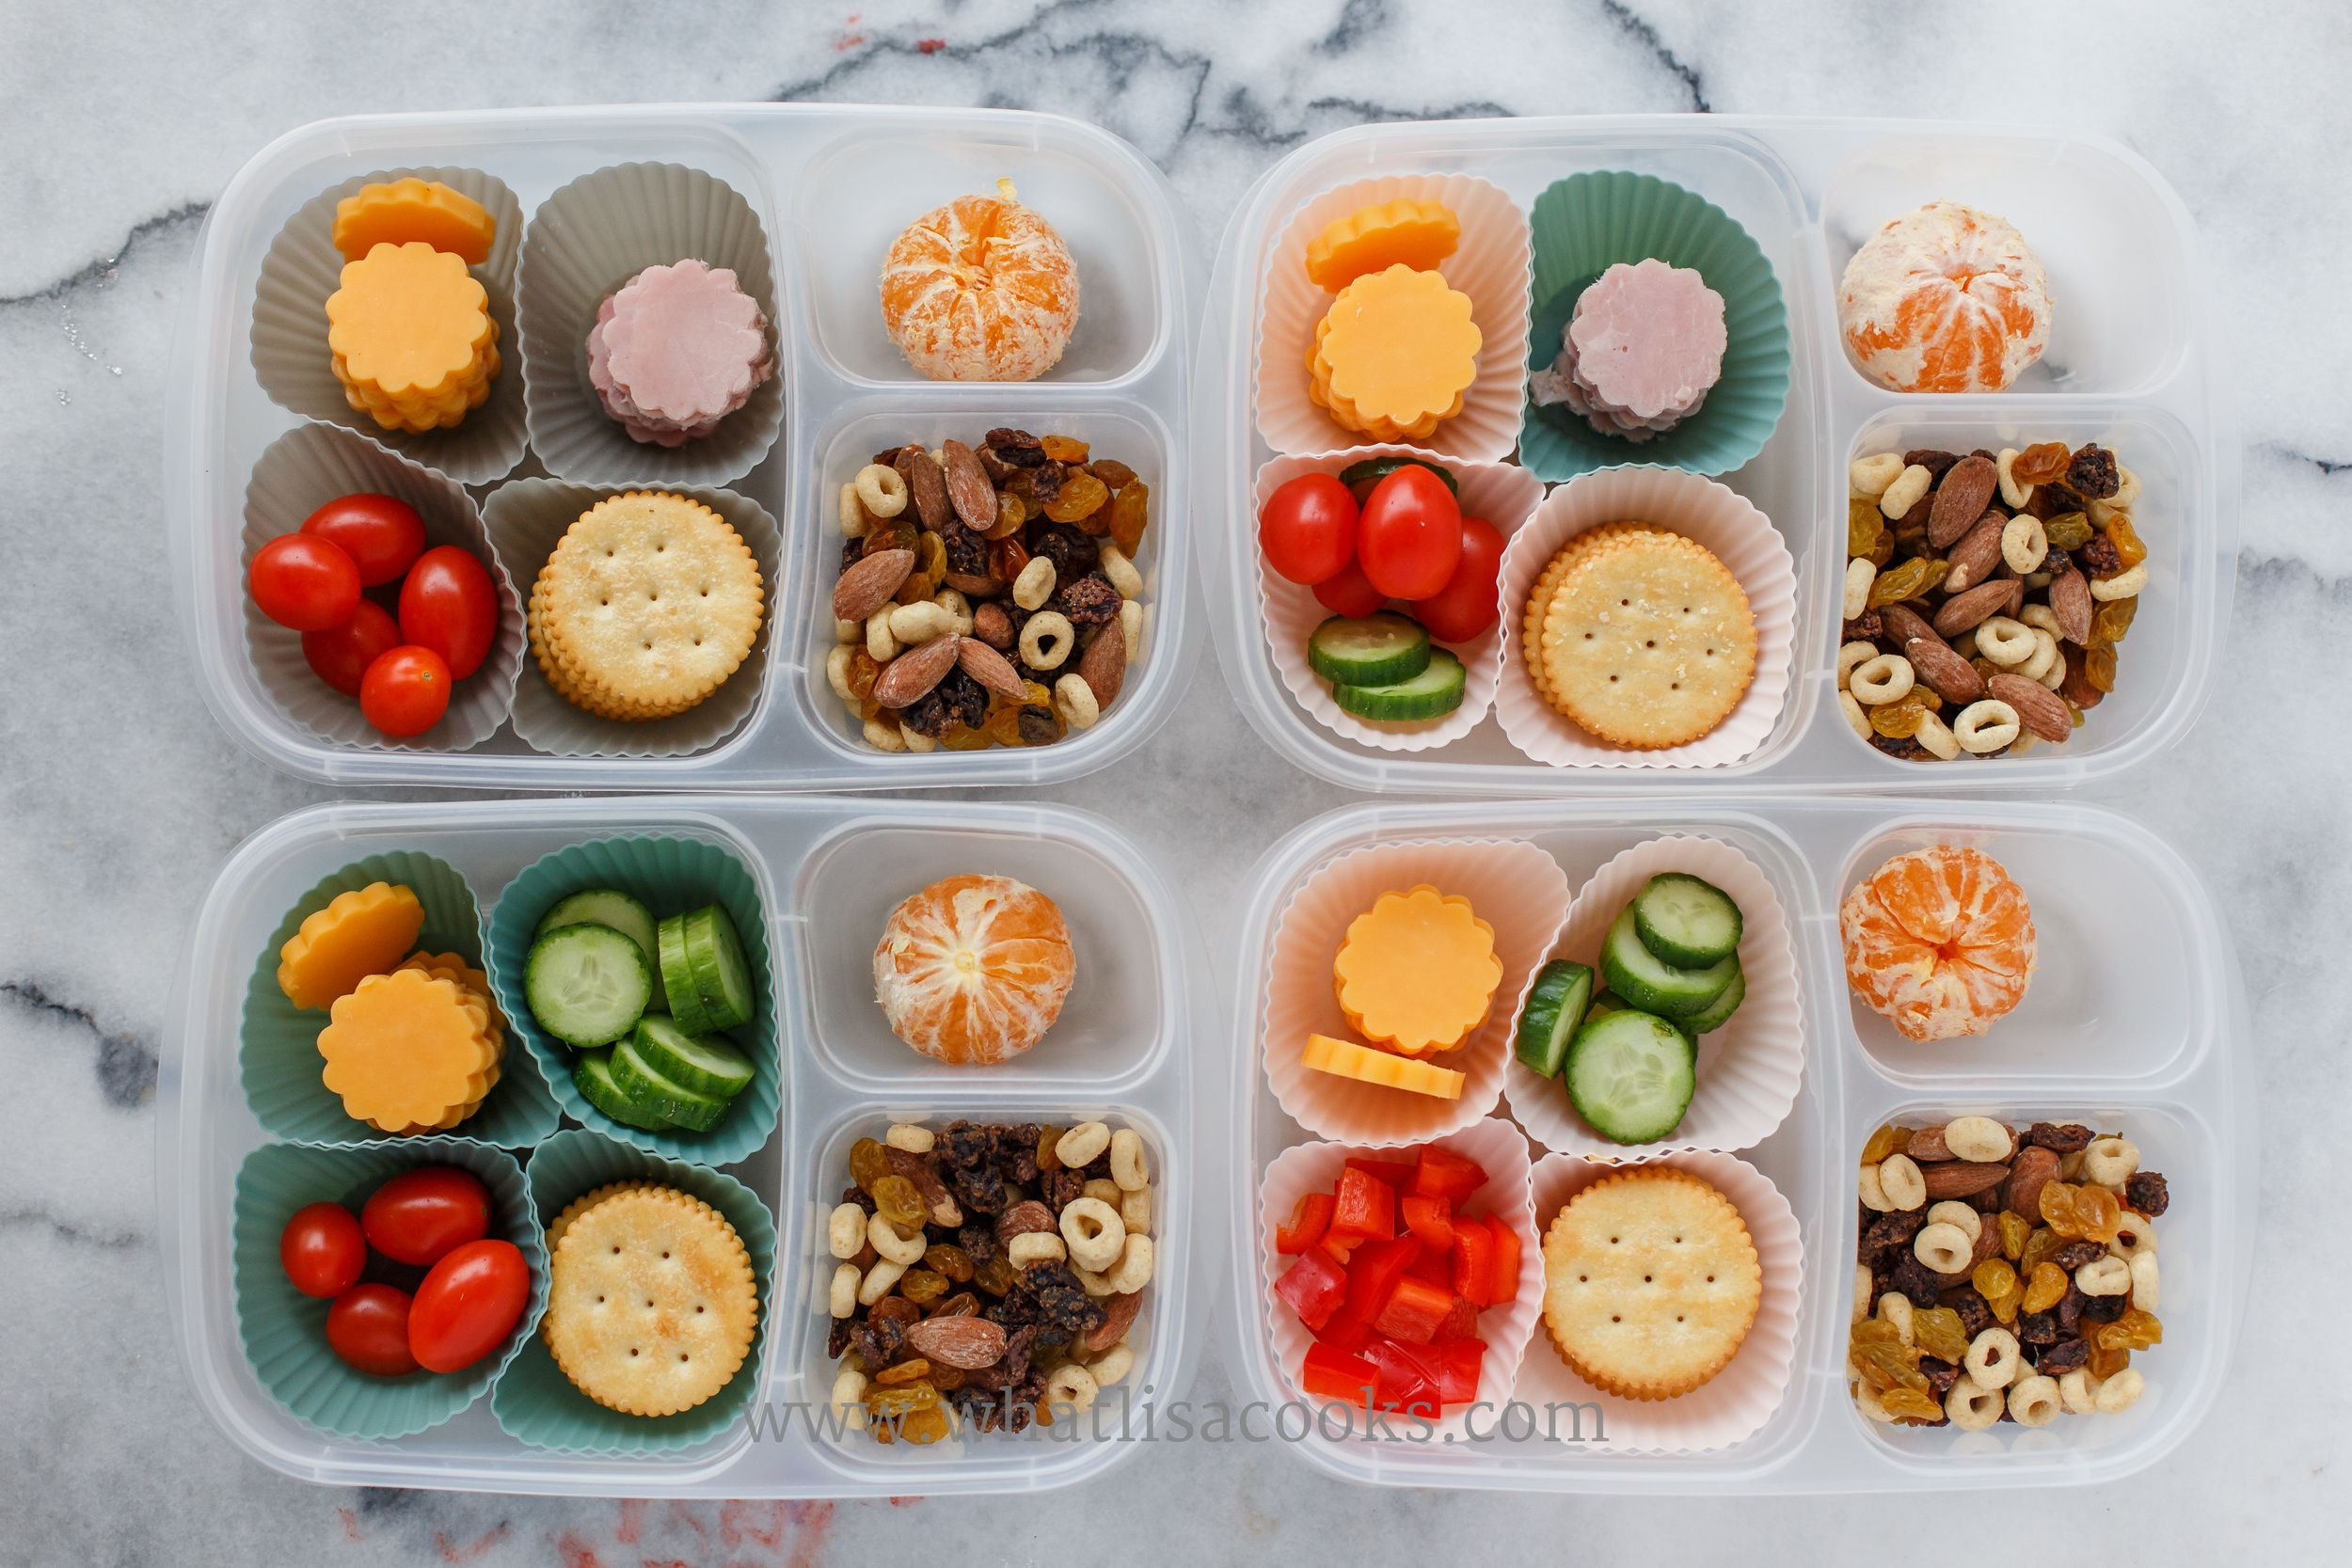 More than 2 Dozen Gluten Free & Grain Free School Lunch Ideas